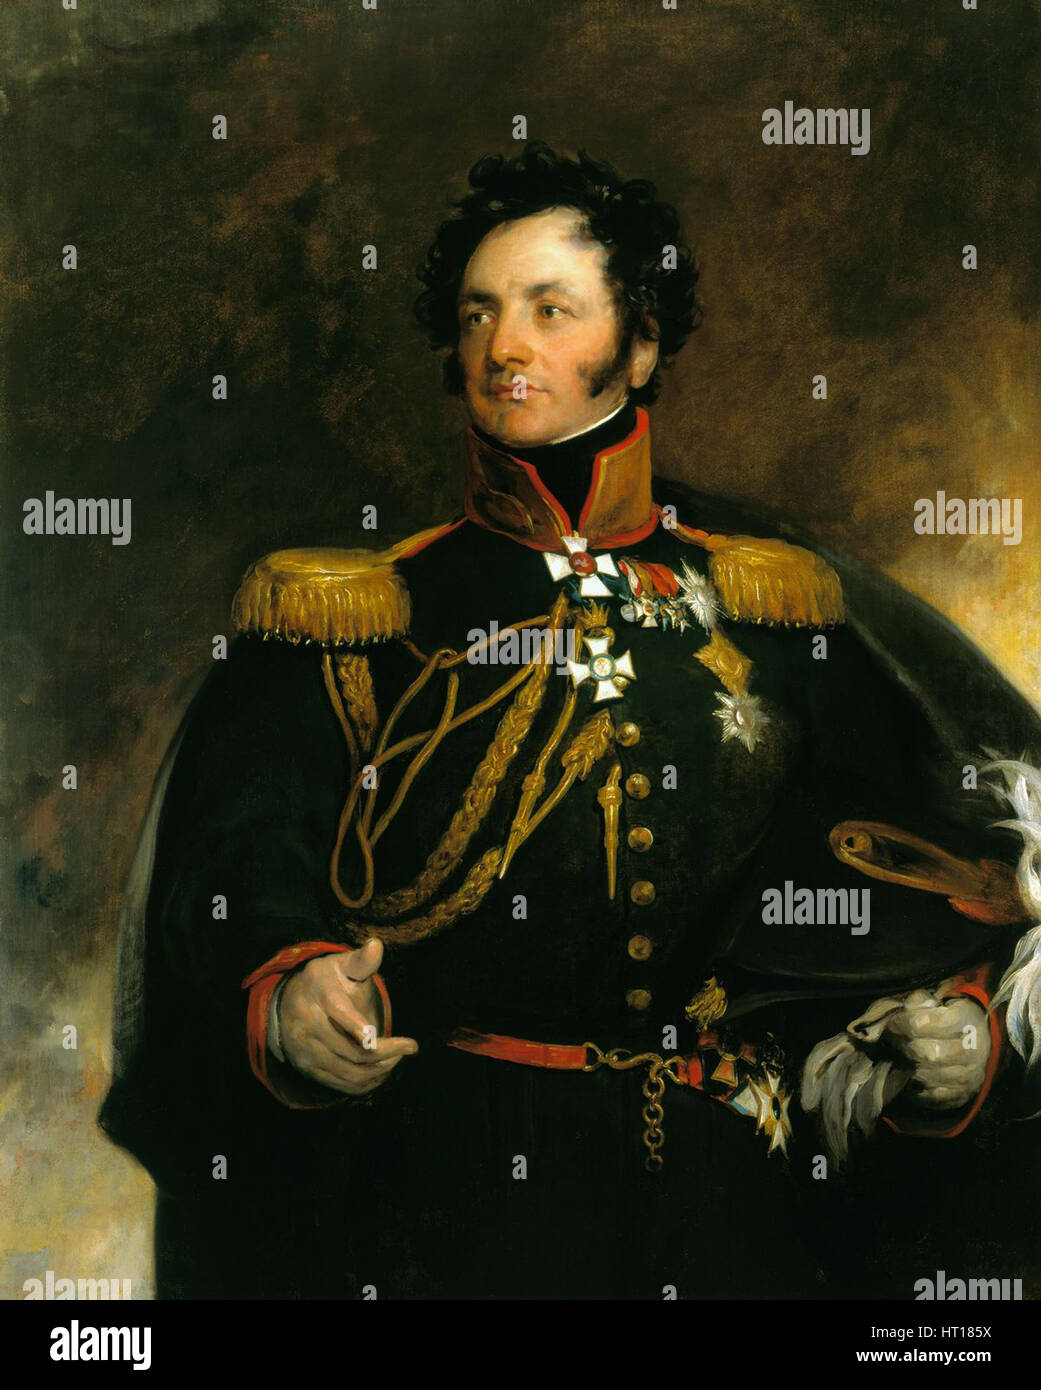 Portrait of General Fyodor Petrovich Uvarov (1773-1824), 1818. Artist: Lawrence, Sir Thomas (1769-1830) - Stock Image